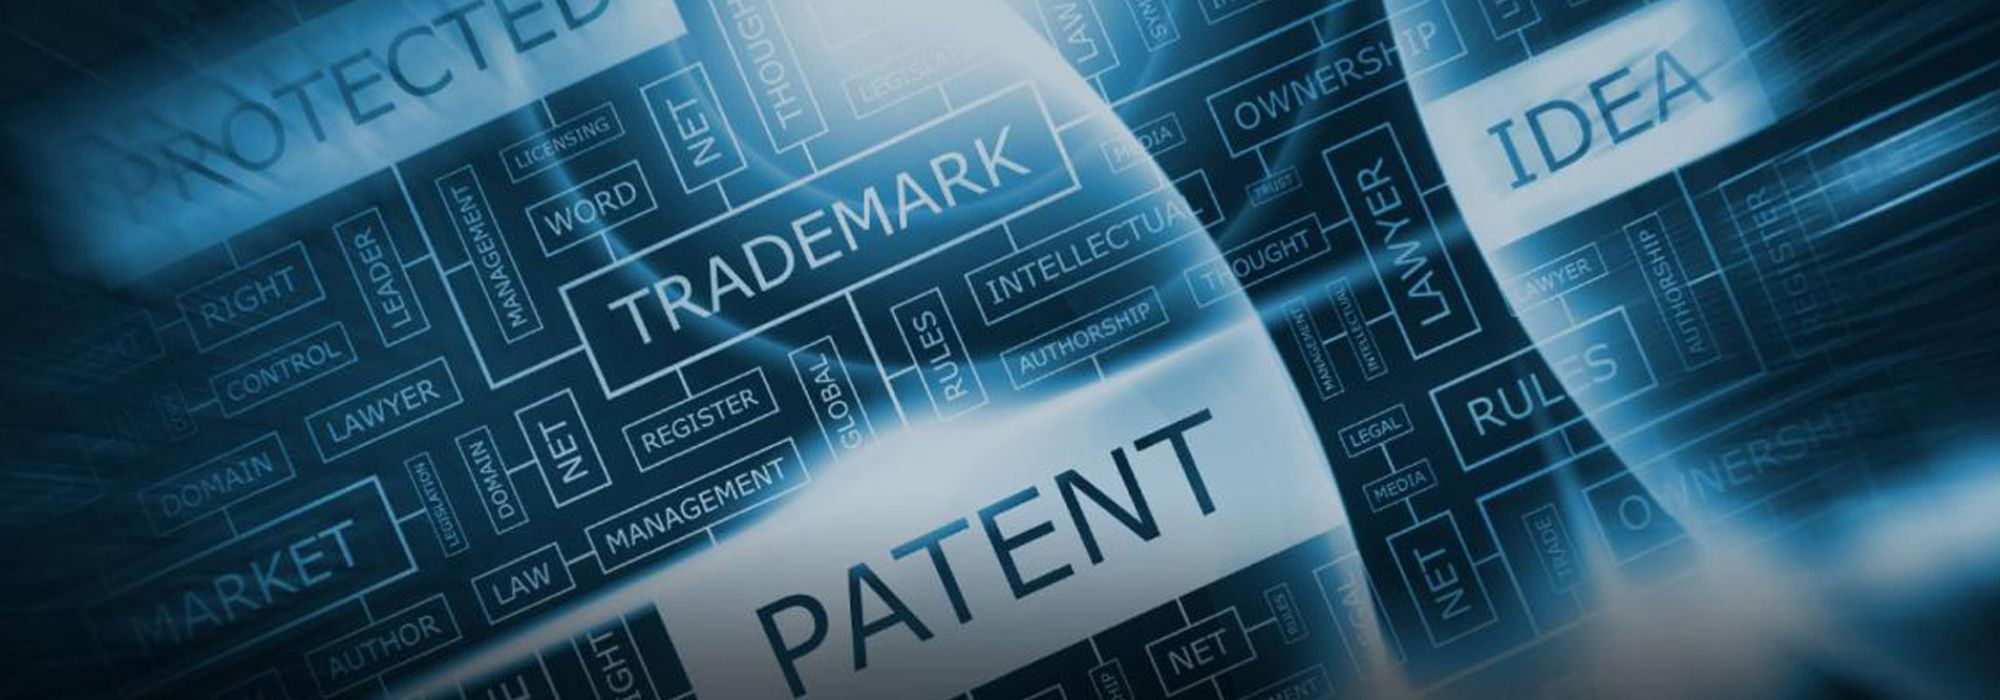 NWAMU Patent, Trademark Attorney Lawyer Firm in St Louis